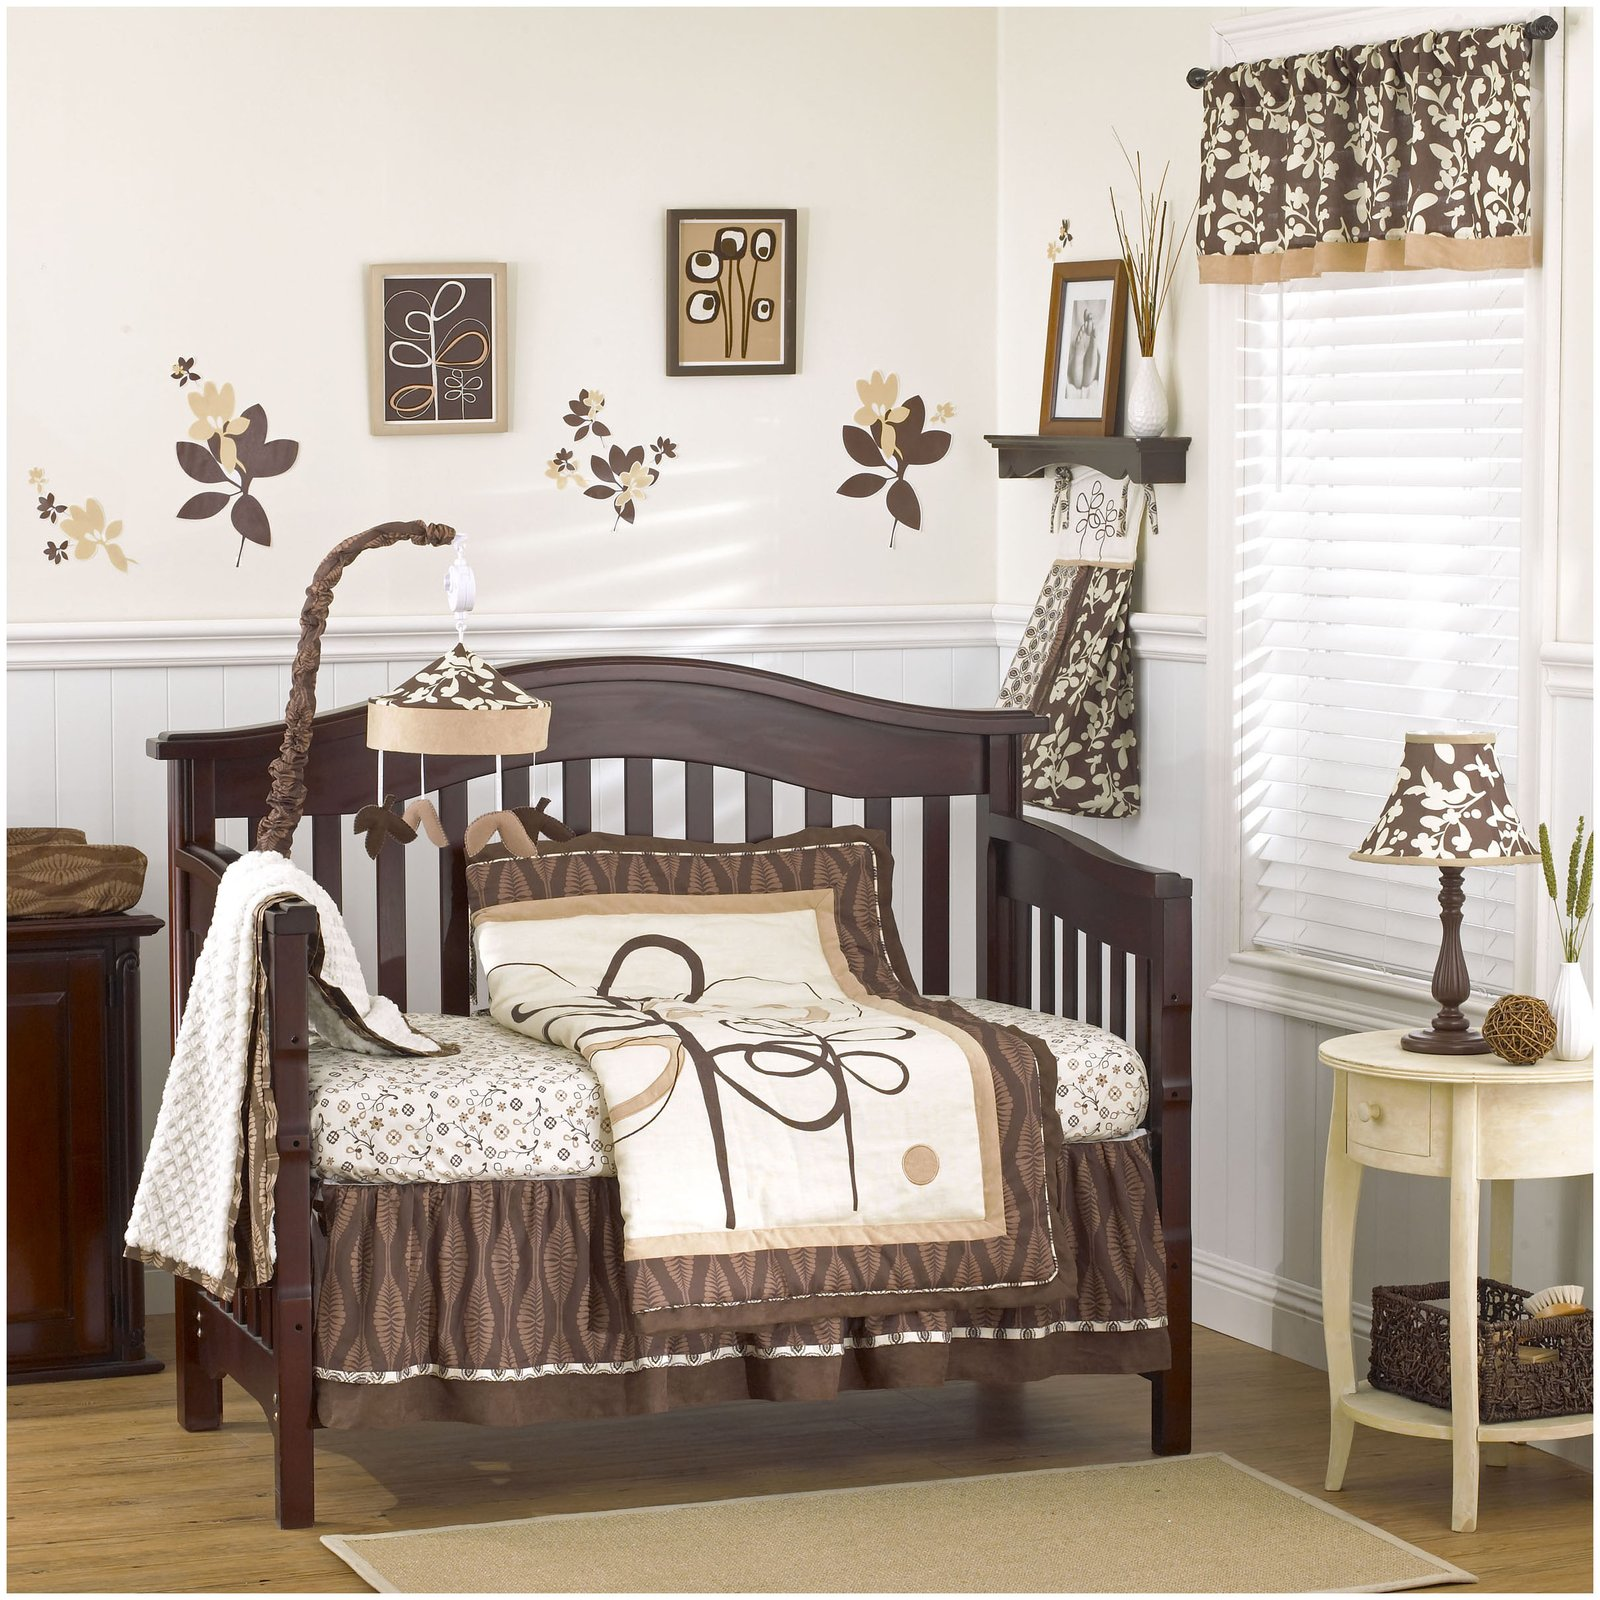 20 Extremely Lovely Neutral Nursery Room Decor Ideas That: Themes For Baby Rooms Ideas